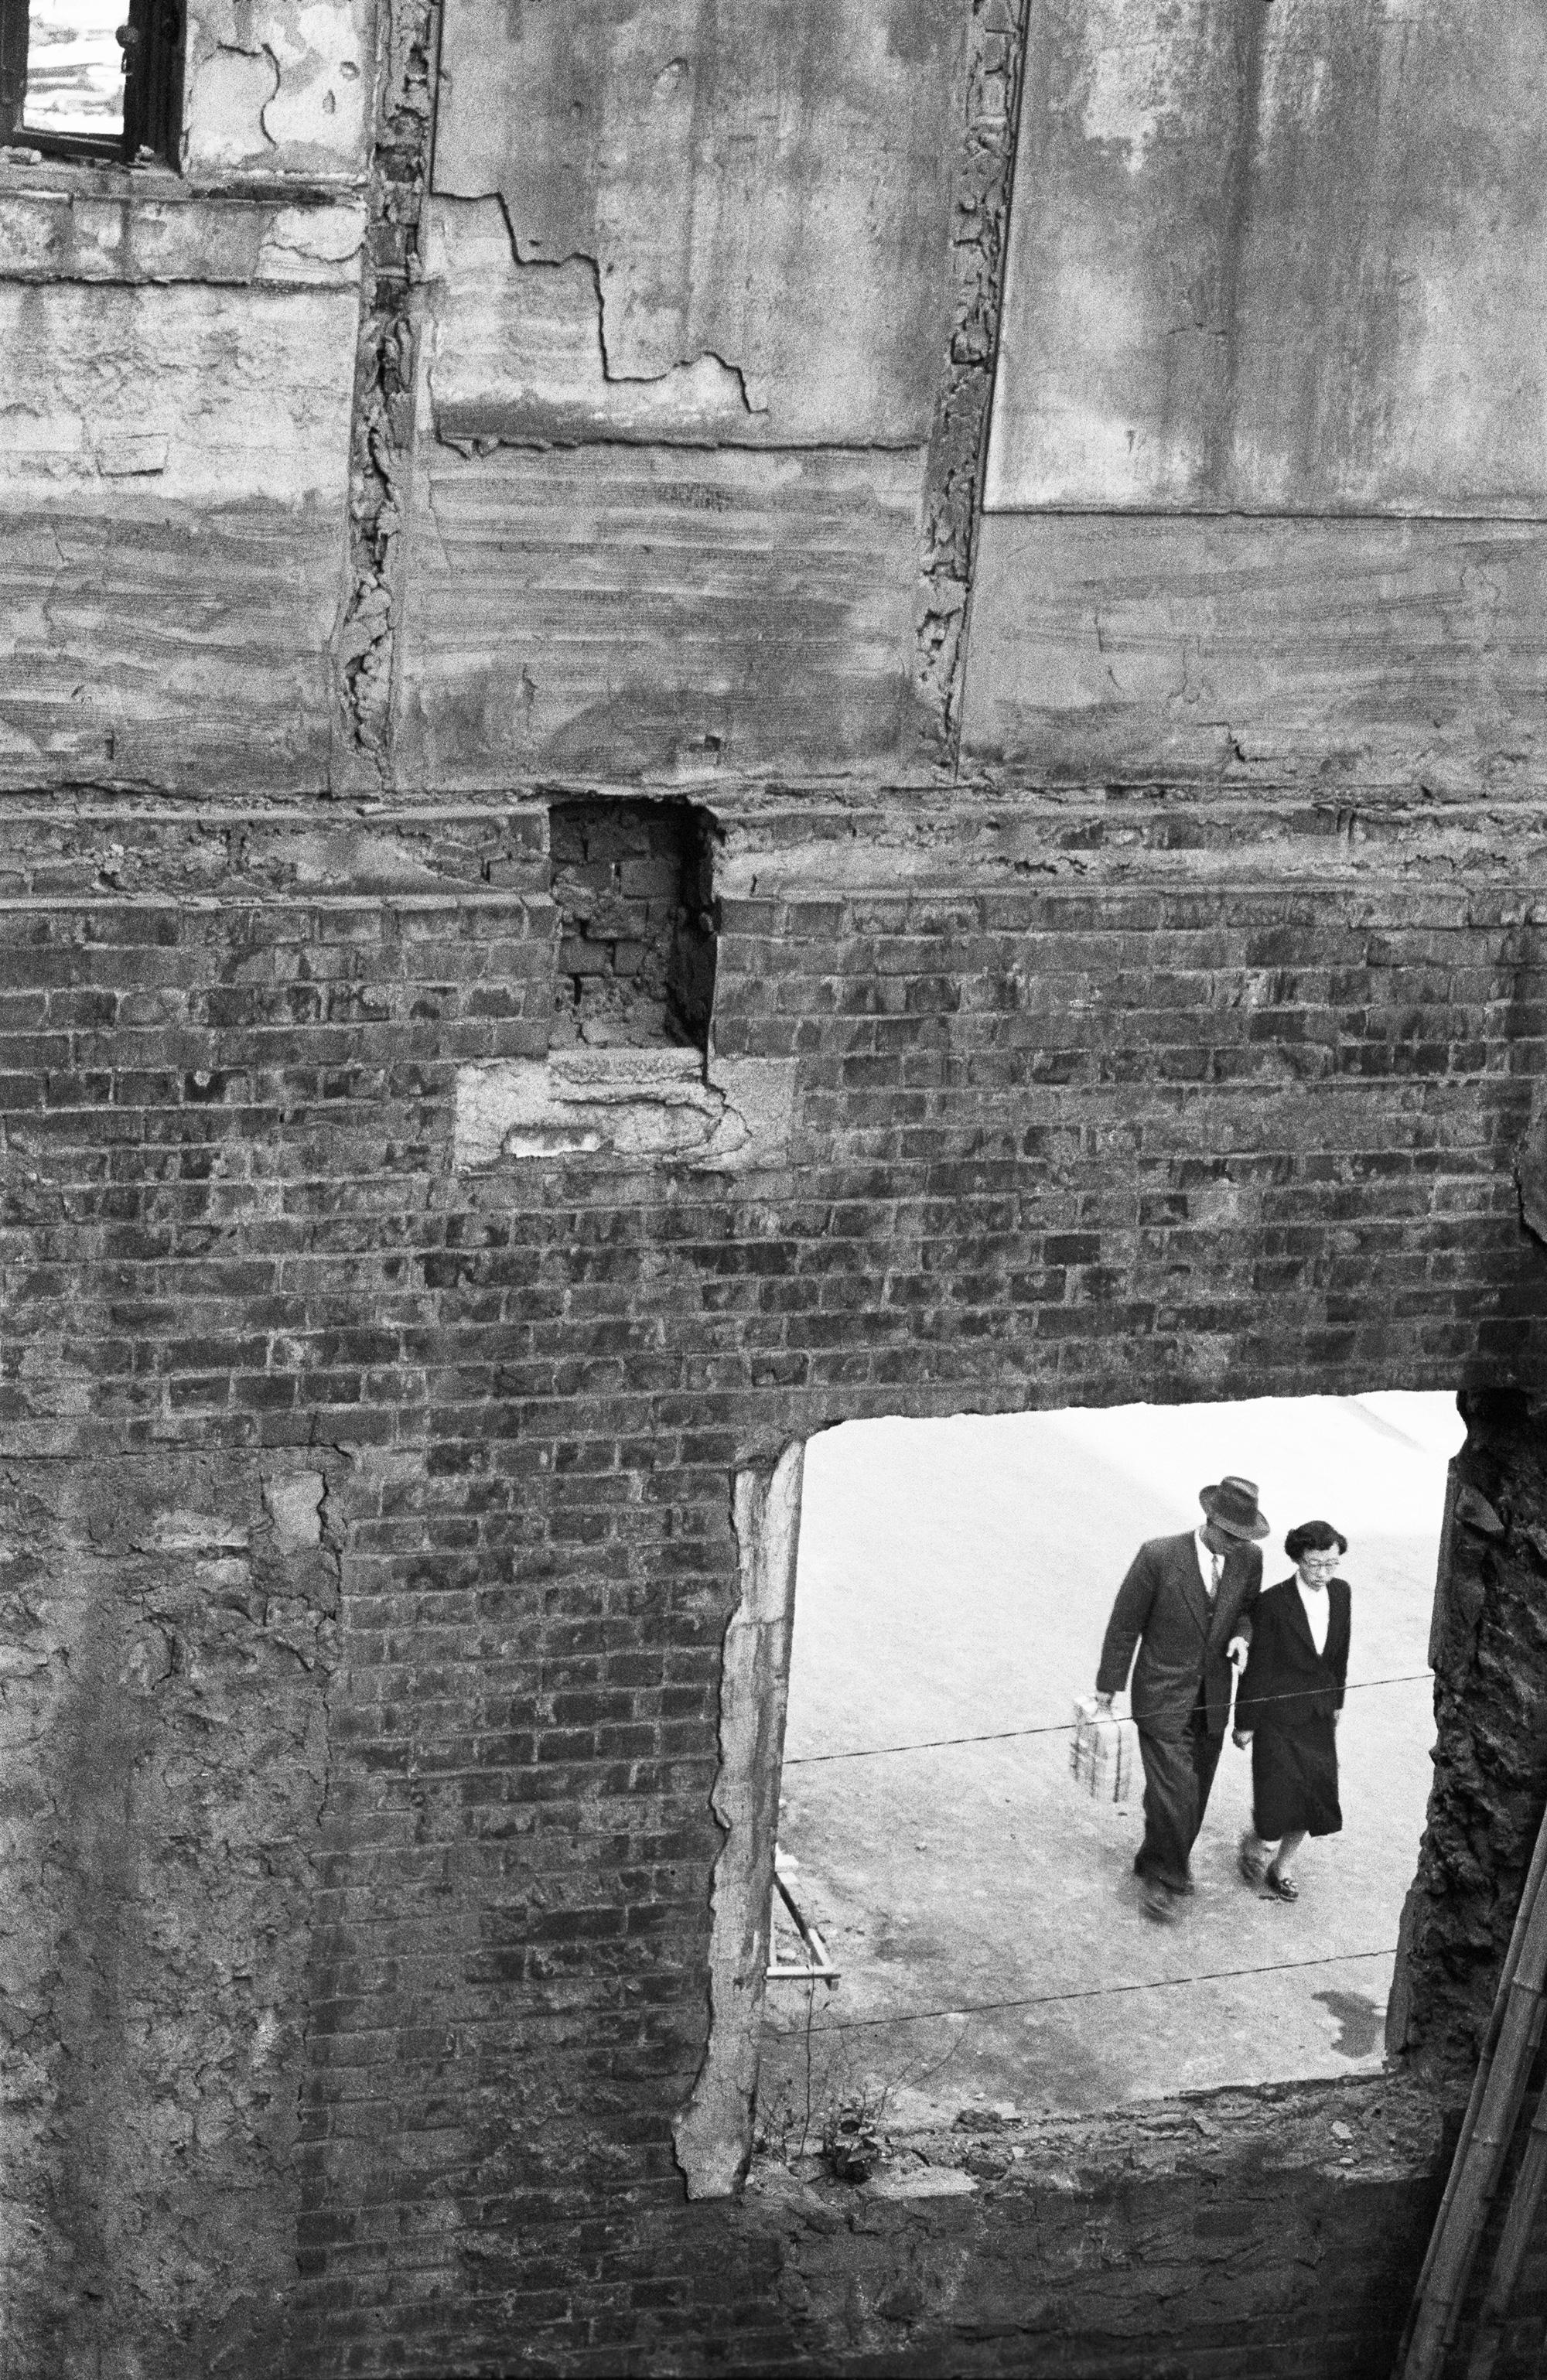 Han Youngsoo photograph, Seoul, Korea 1956-63